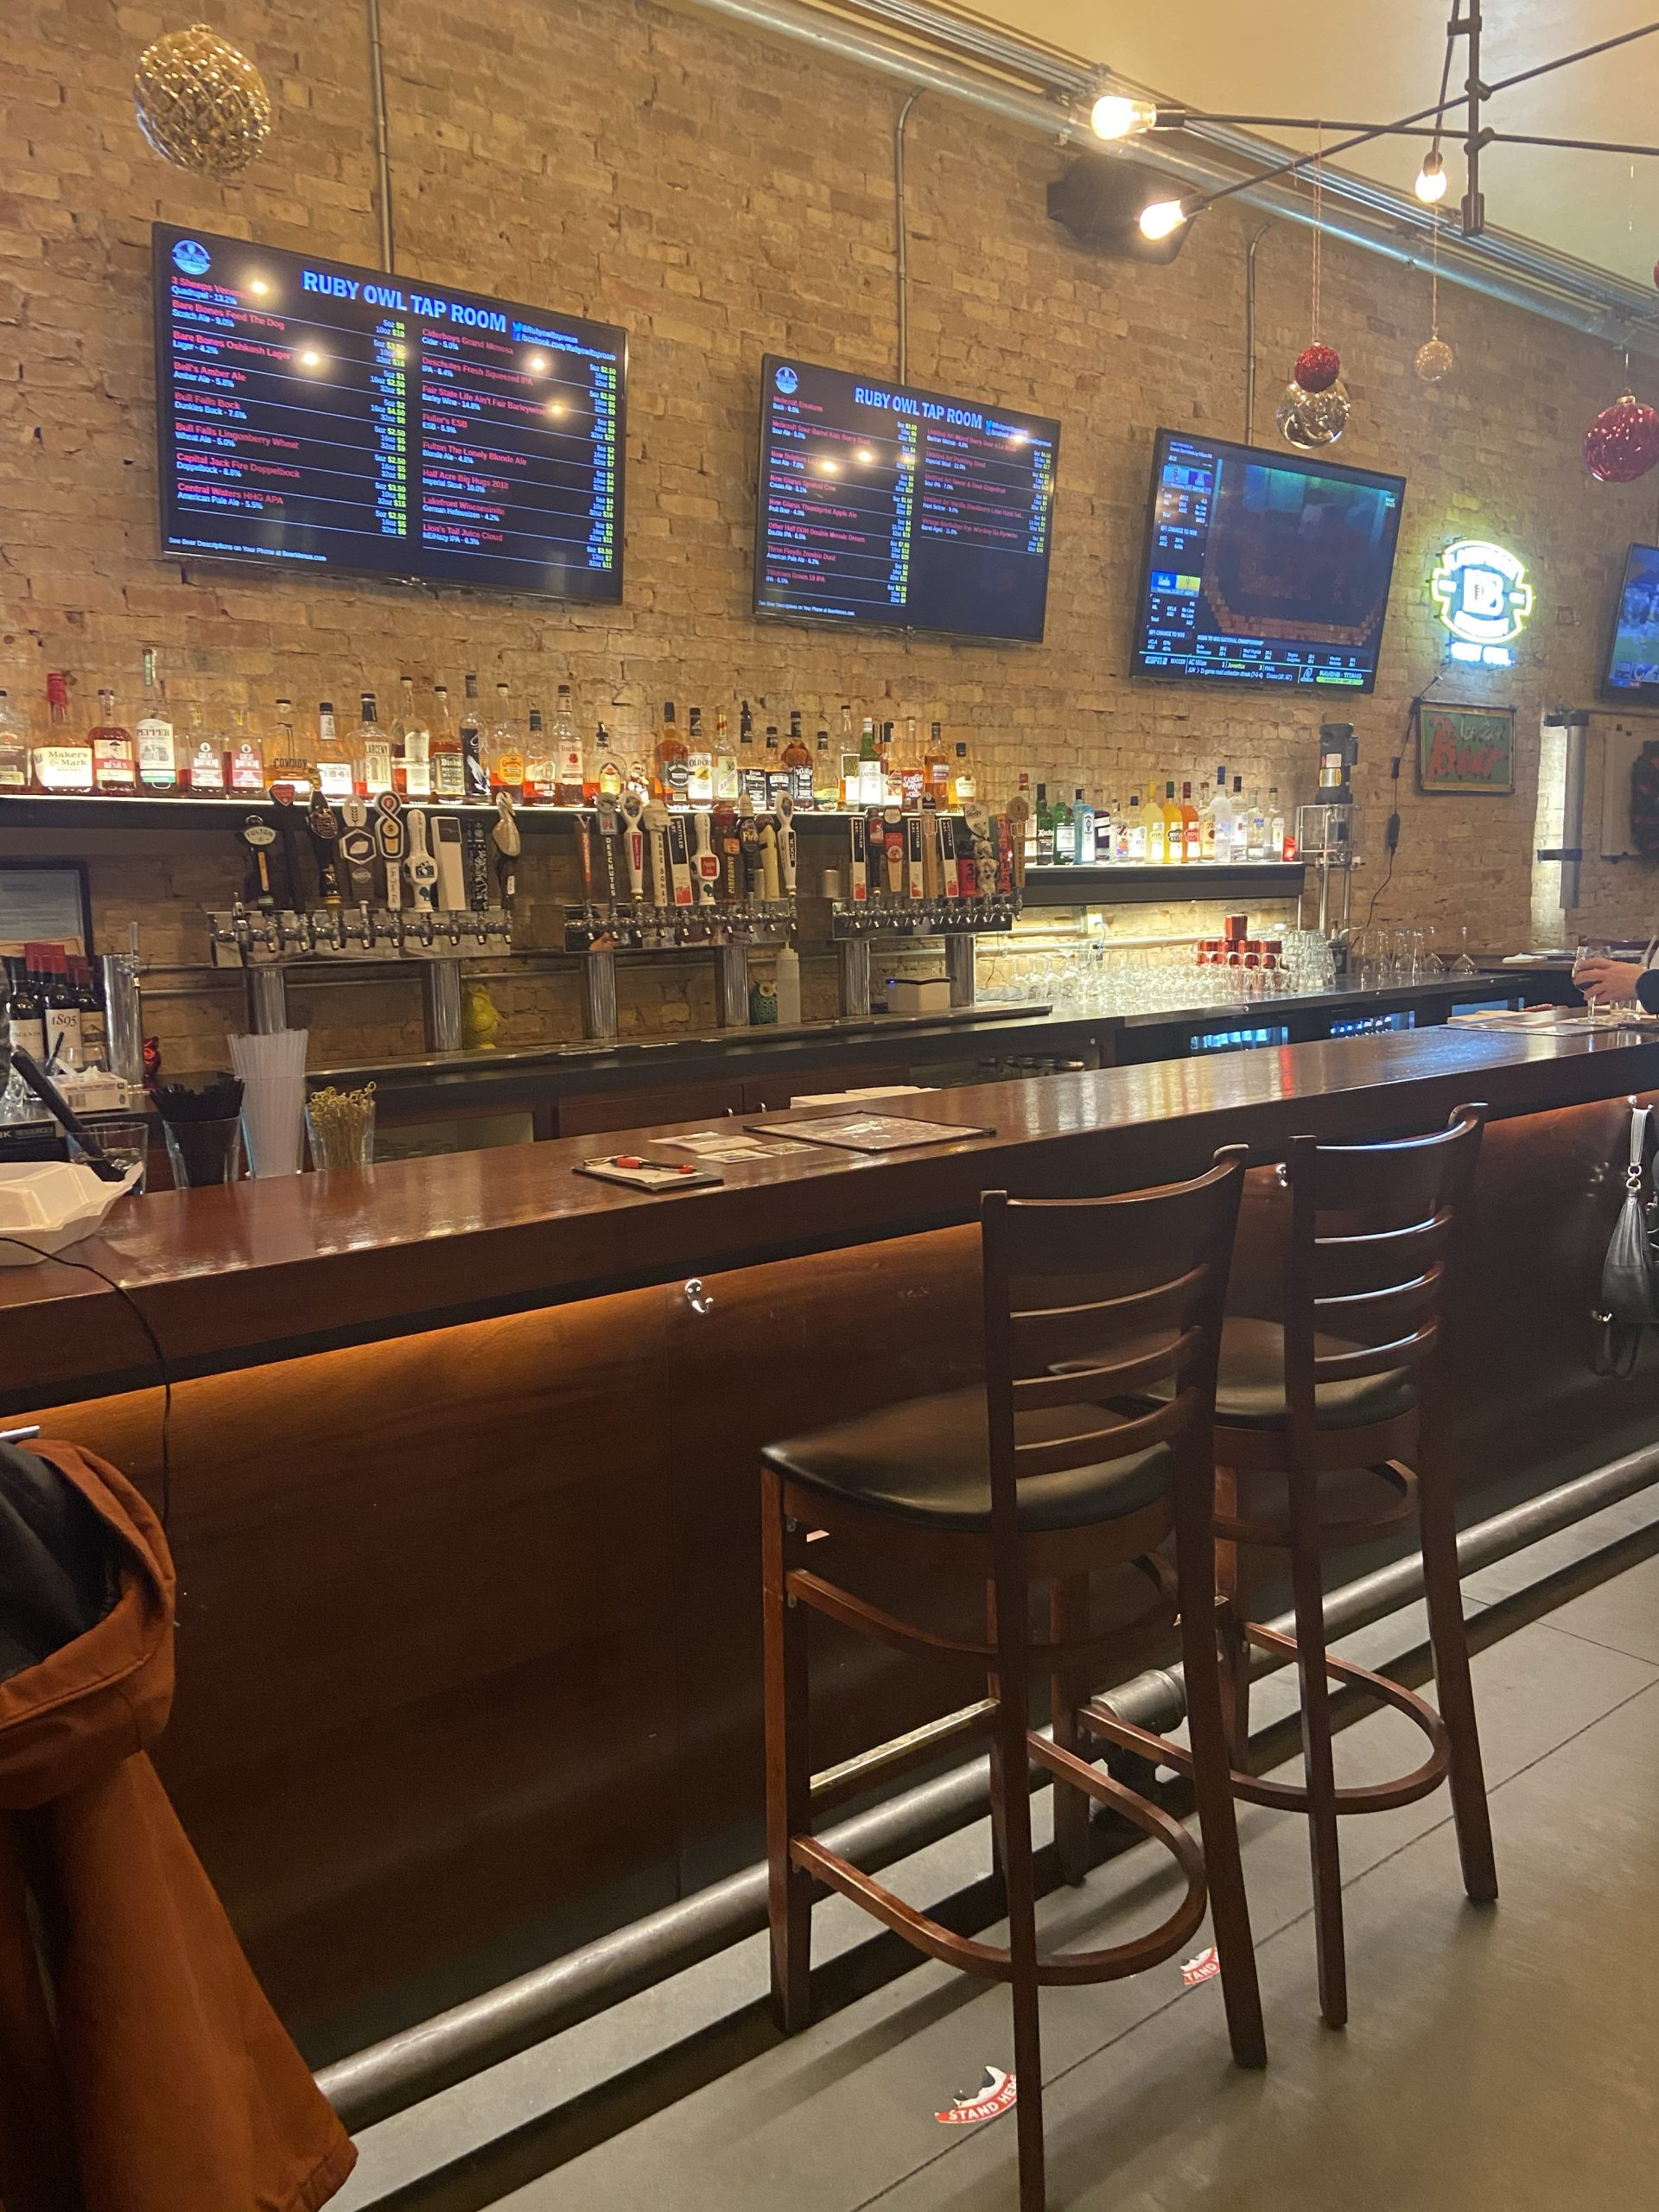 Ruby Owl Tap Room in Oshkosh